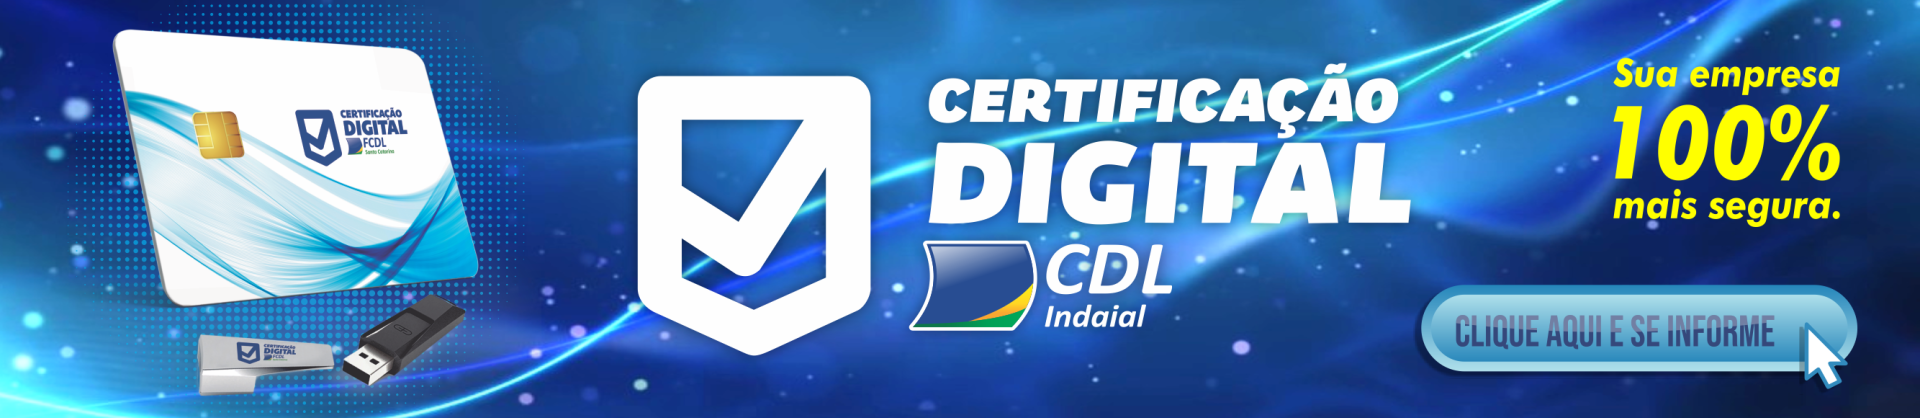 CERTIFICADO DIGITAL NOVO